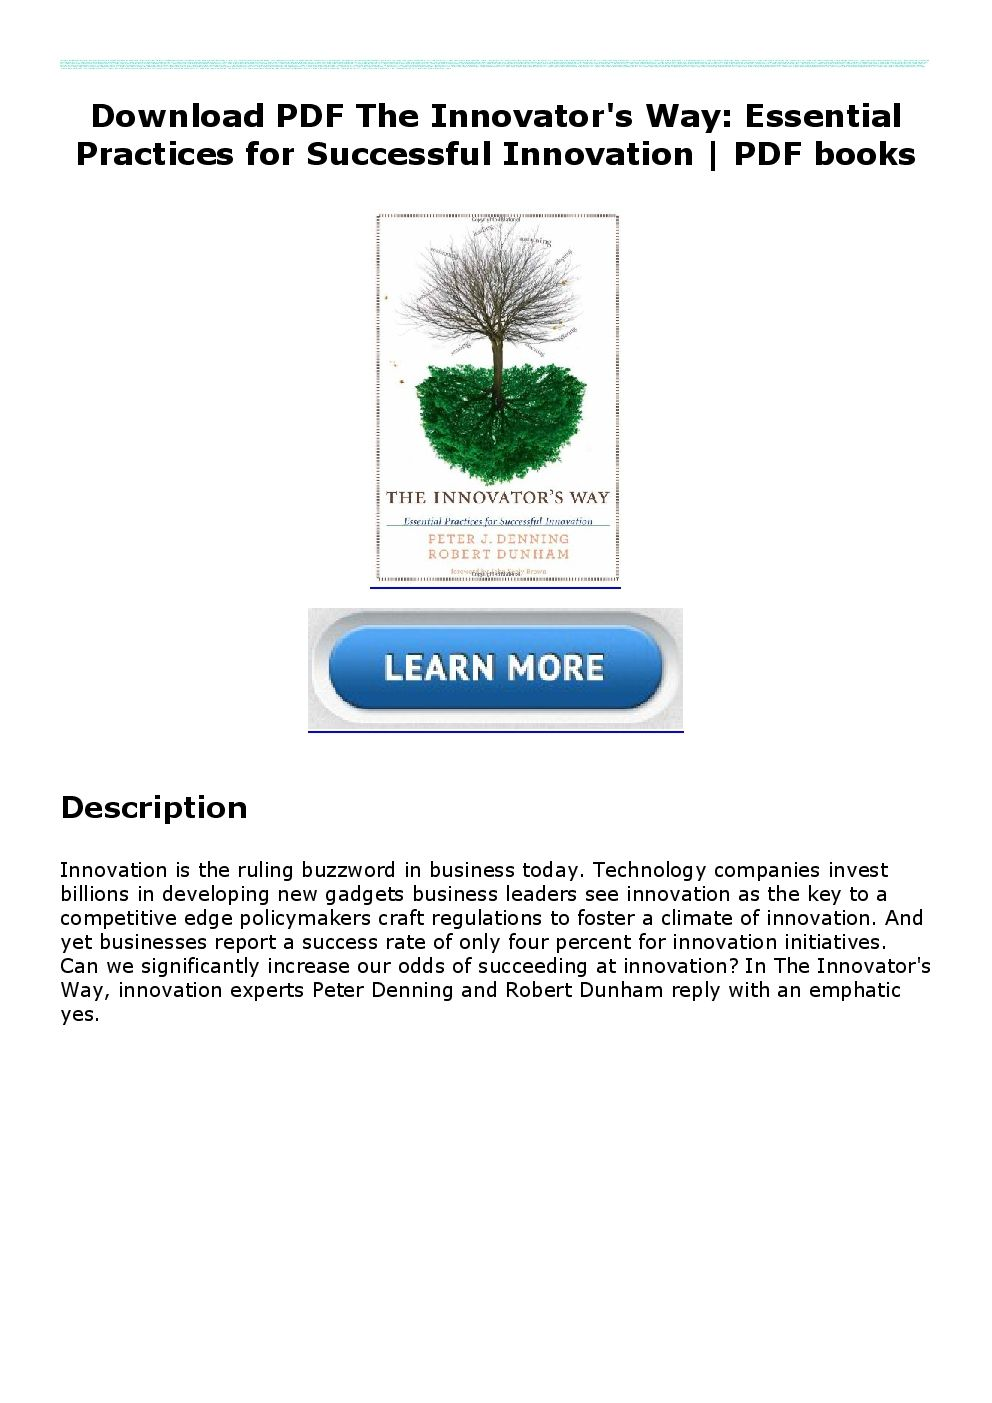 Download PDF The Innovator's Way Essential Practices for